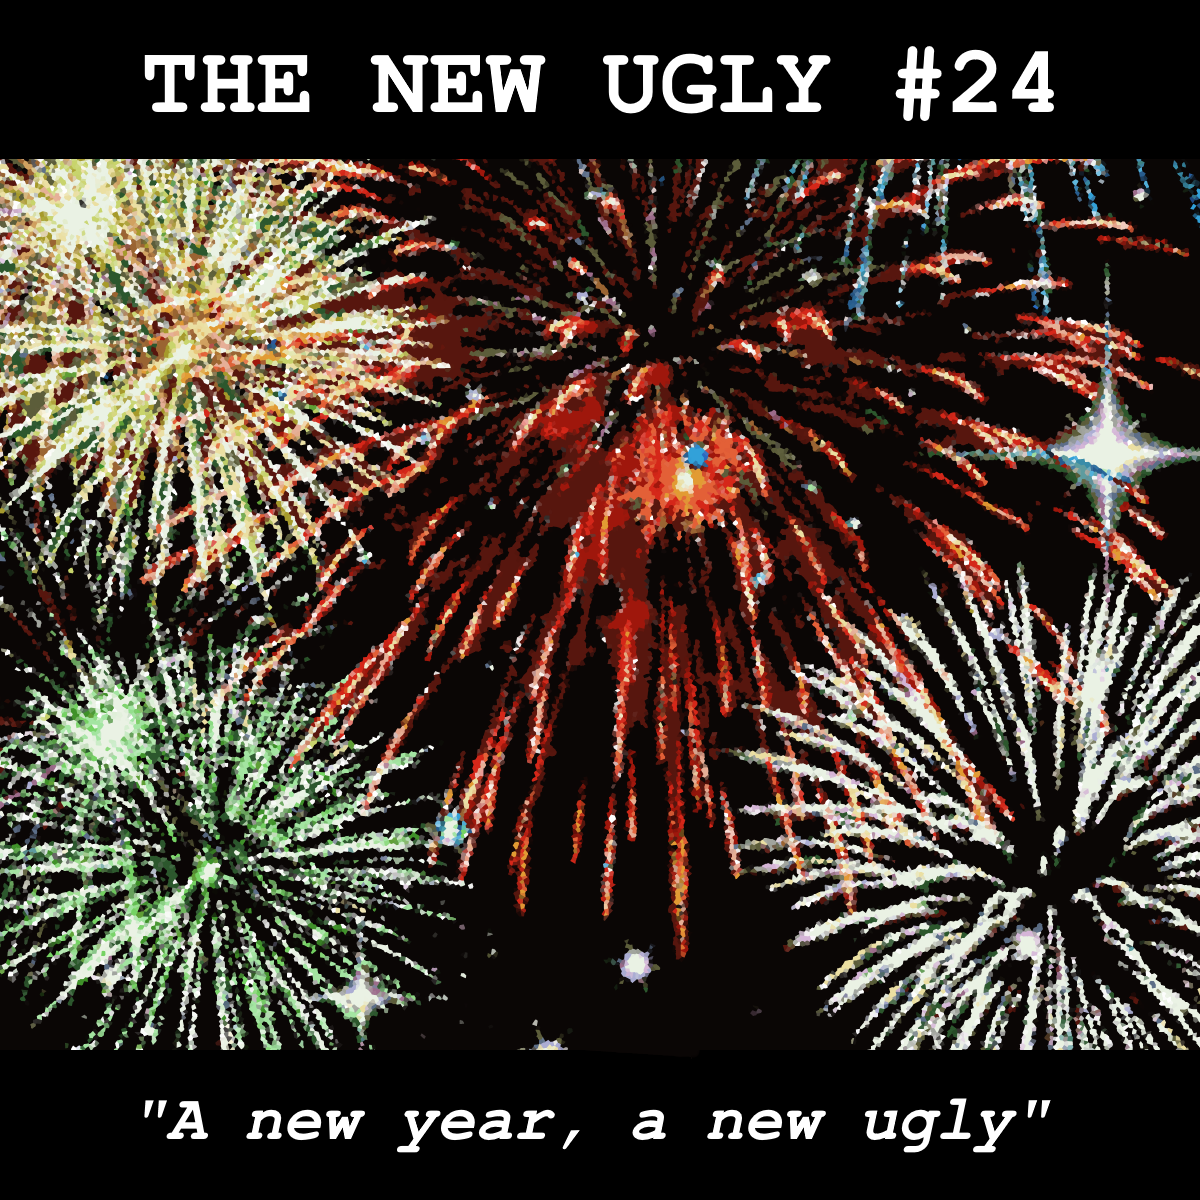 Episode 24: A new year, a new ugly